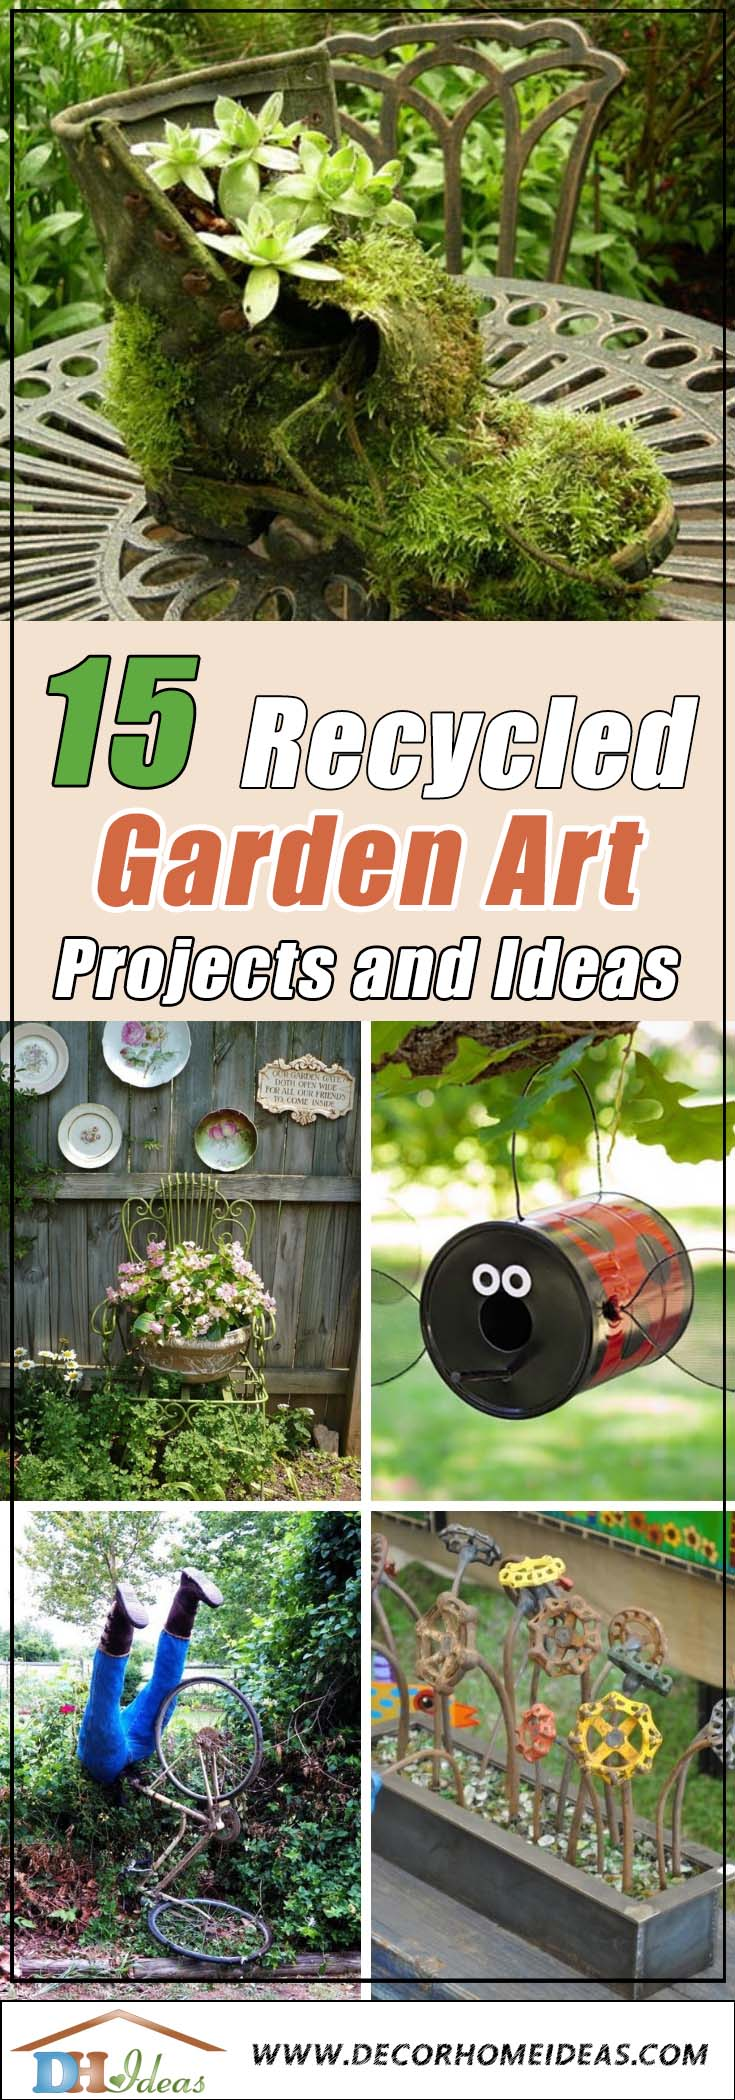 15 Awesome DIY Recycled Garden Art Projects | Best recycled art garden ideas, DIY and projects. Creative themes and designs #diy #gardens #recycled #gardening #gardenideas #gardeningtips #decorhomeideas